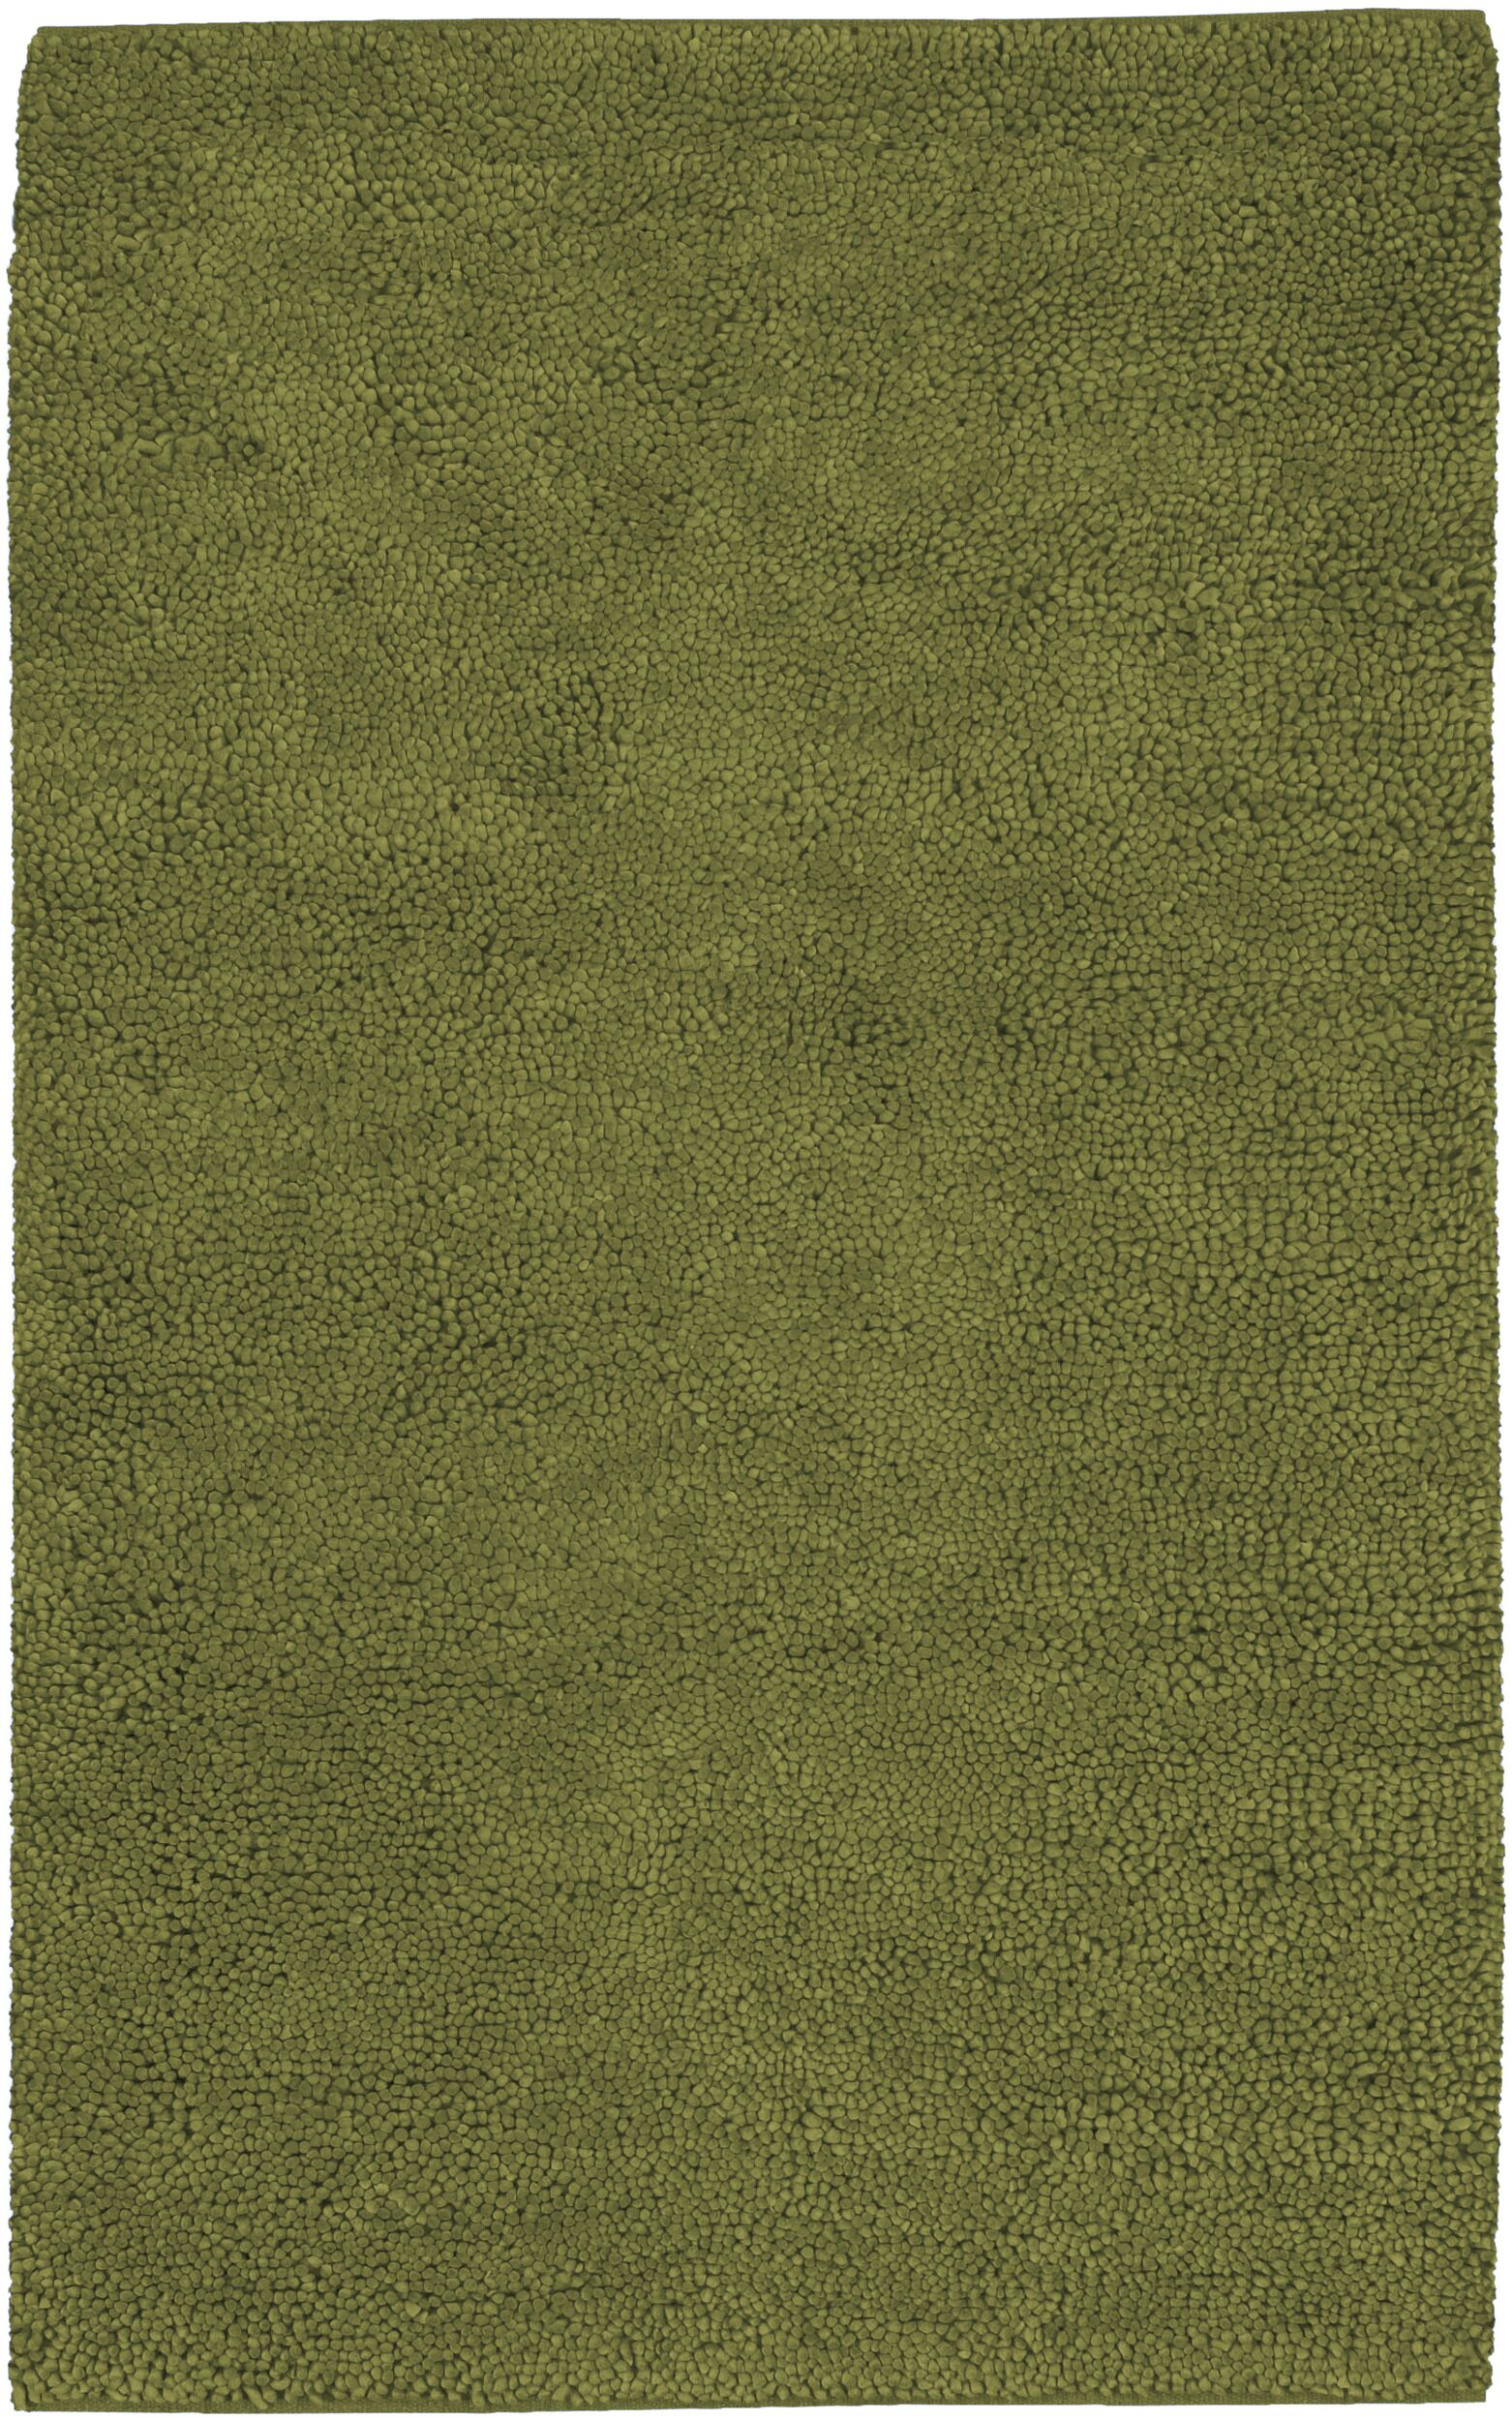 Bonney Hand Woven Wool Green Area Rug Rug Size: Rectangle 5' x 8'